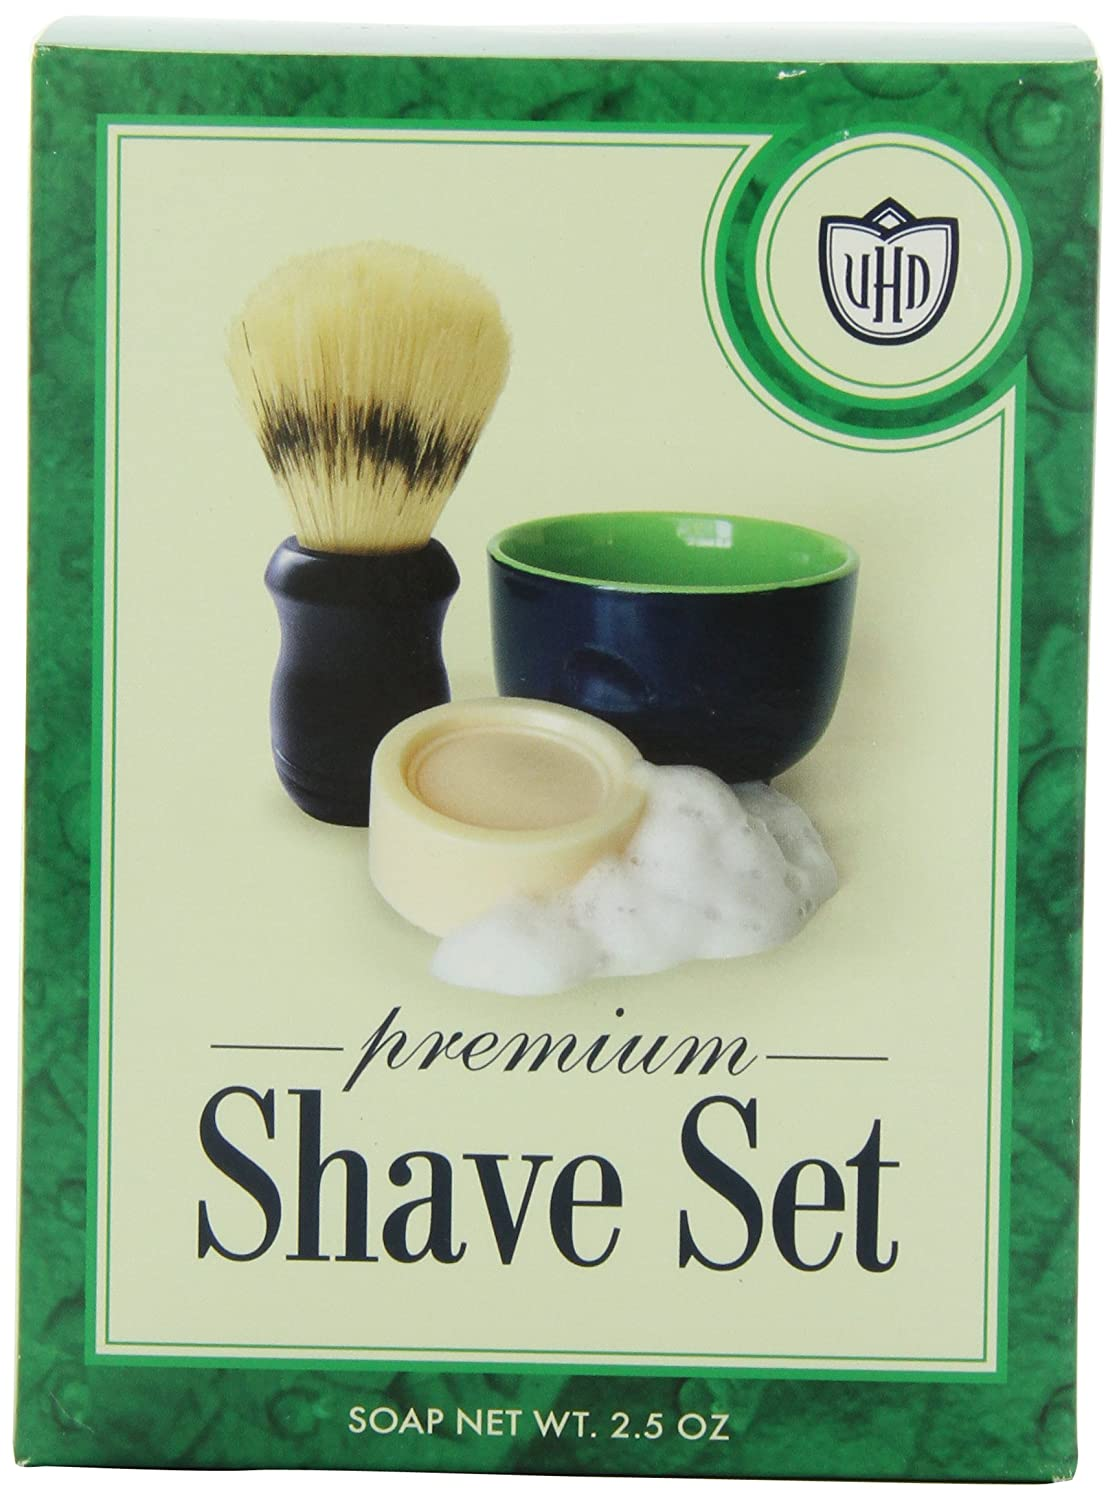 Van Der Hagen Shaving Kit Review